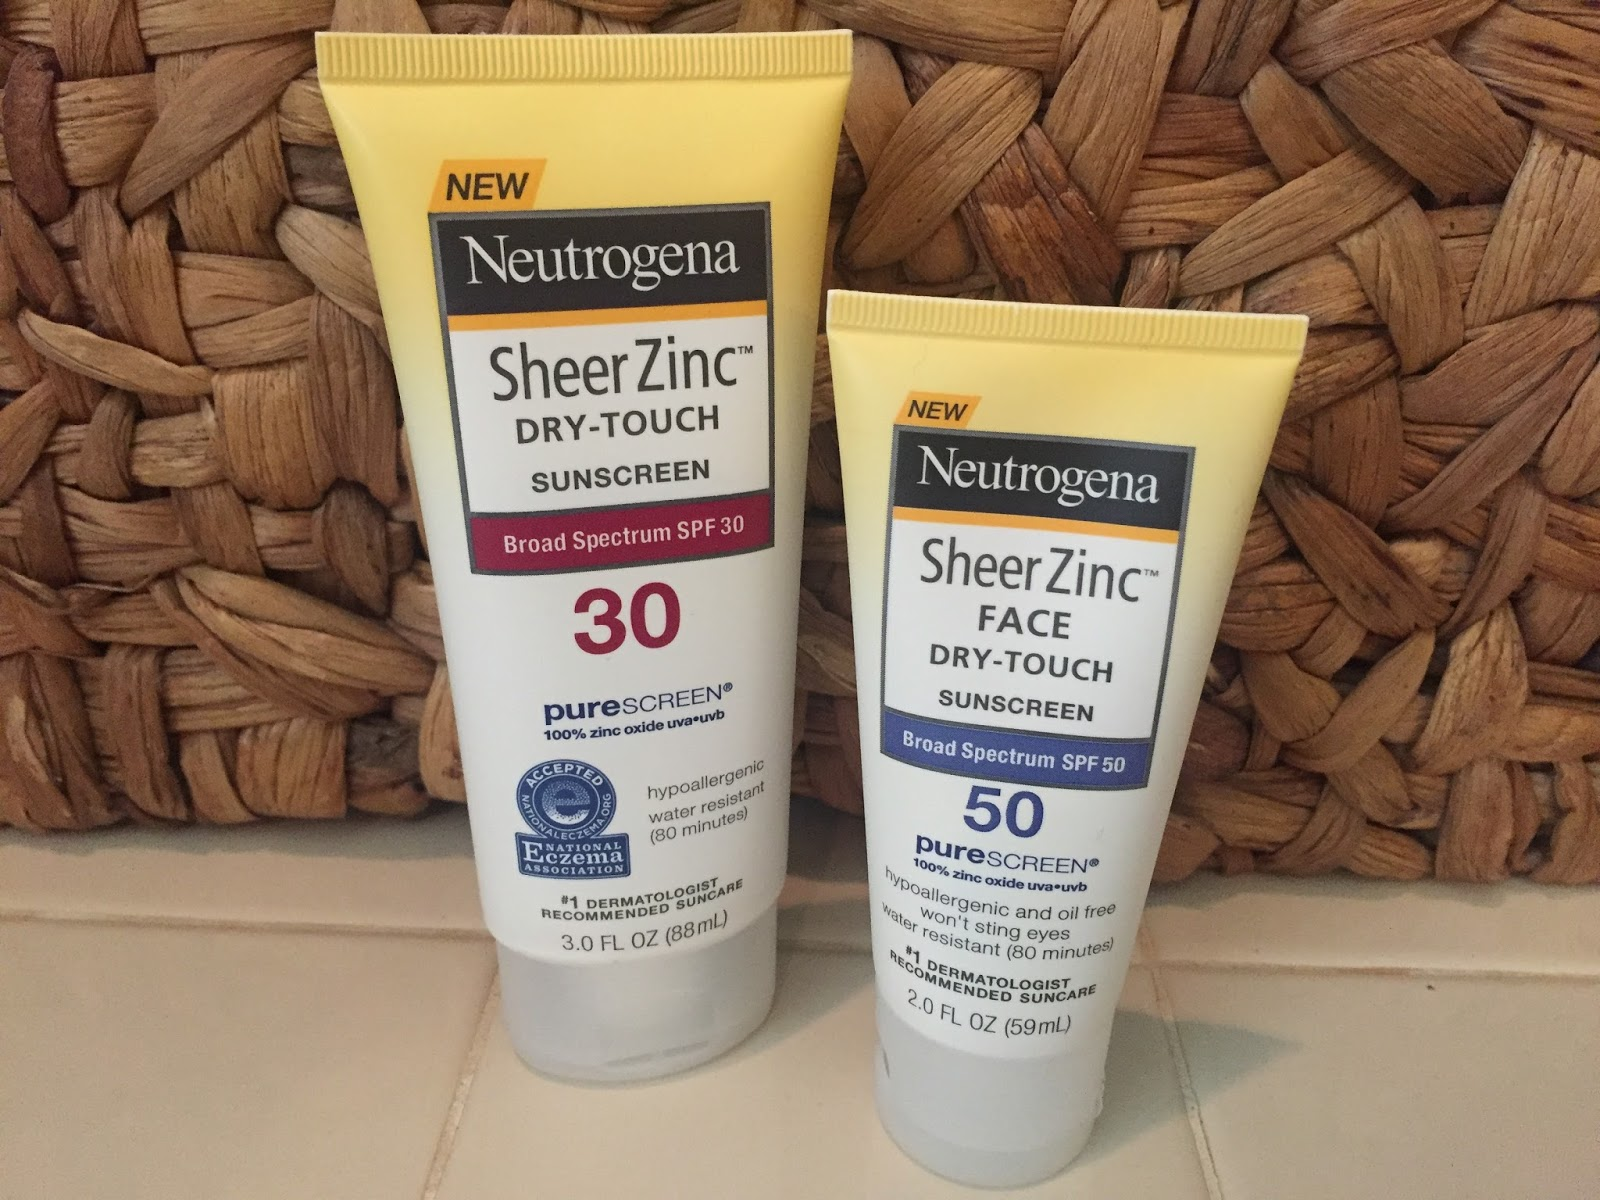 pammy blogs beauty  live a sun safe life  cvs long live skin campaign with neutrogena and the